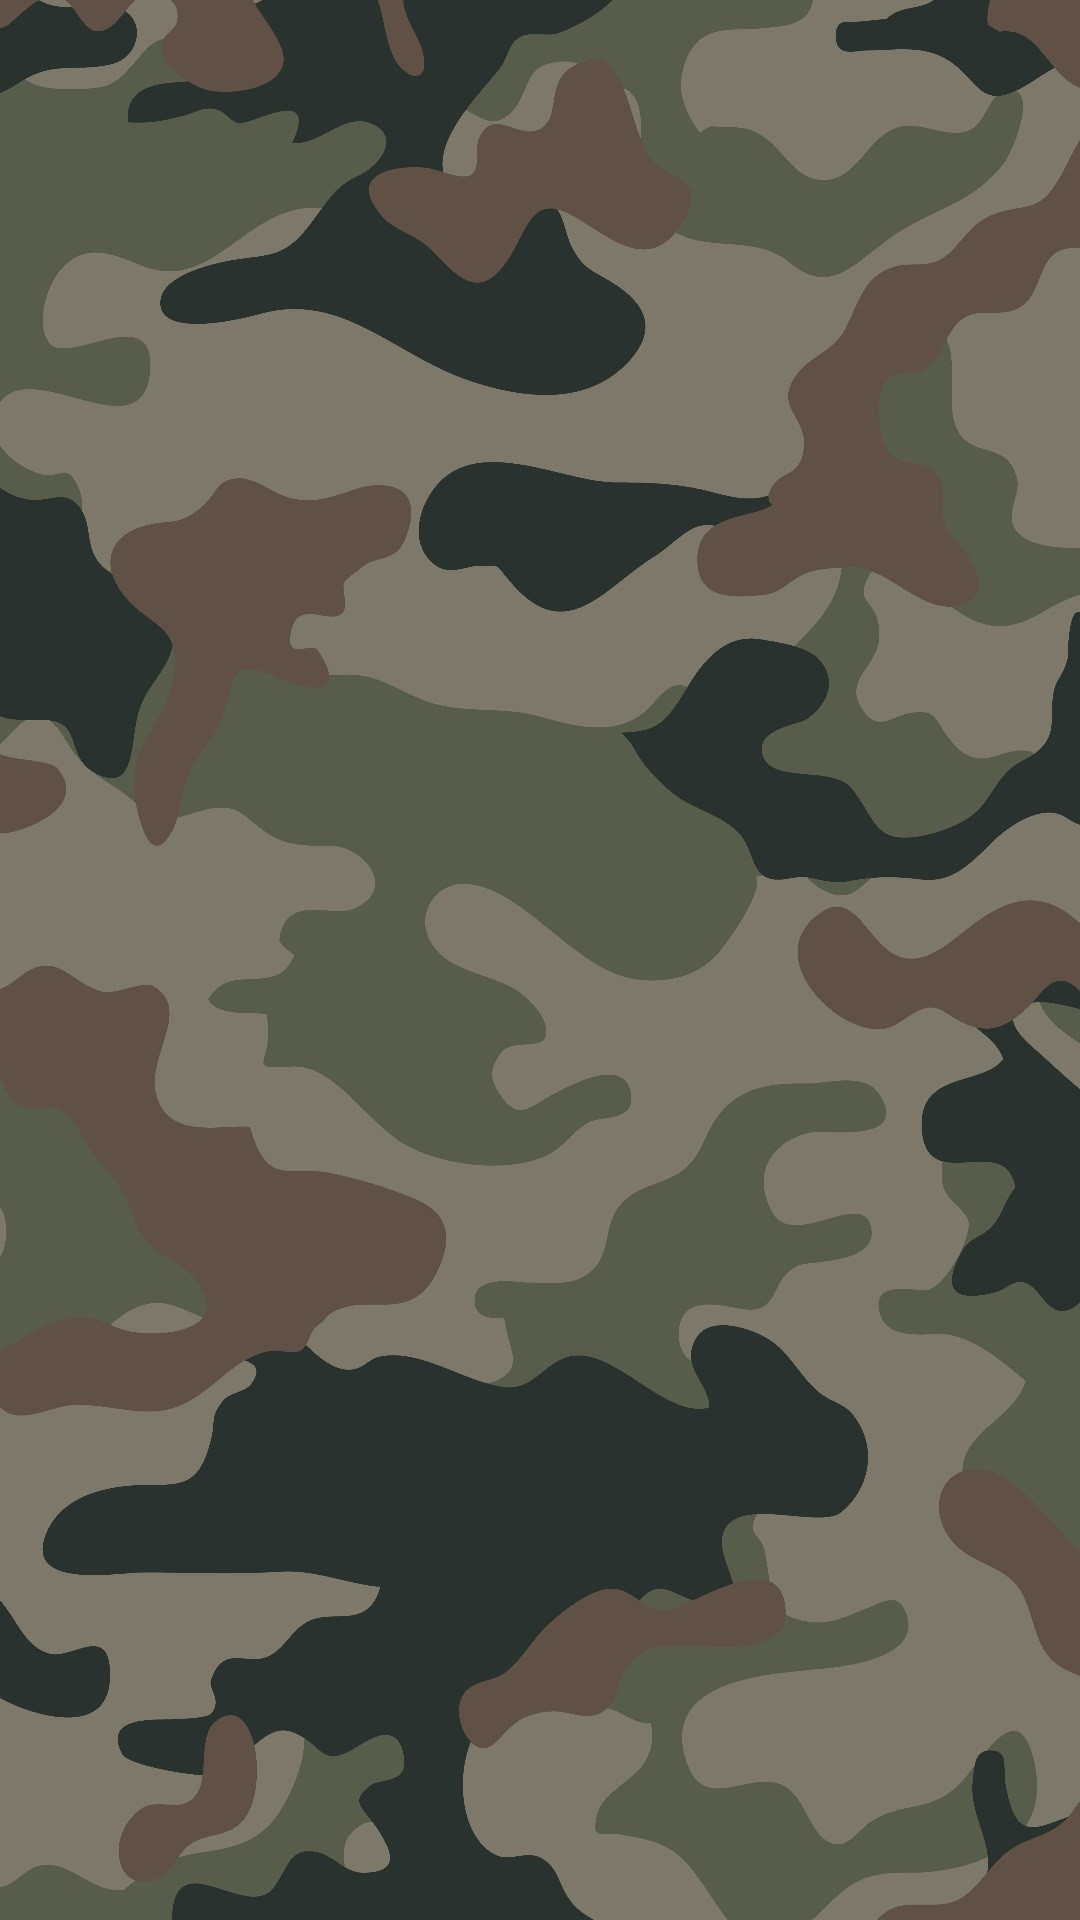 Camouflage wallpaper for iPhone or Android. Tags: camo, hunting, army,  backgrounds